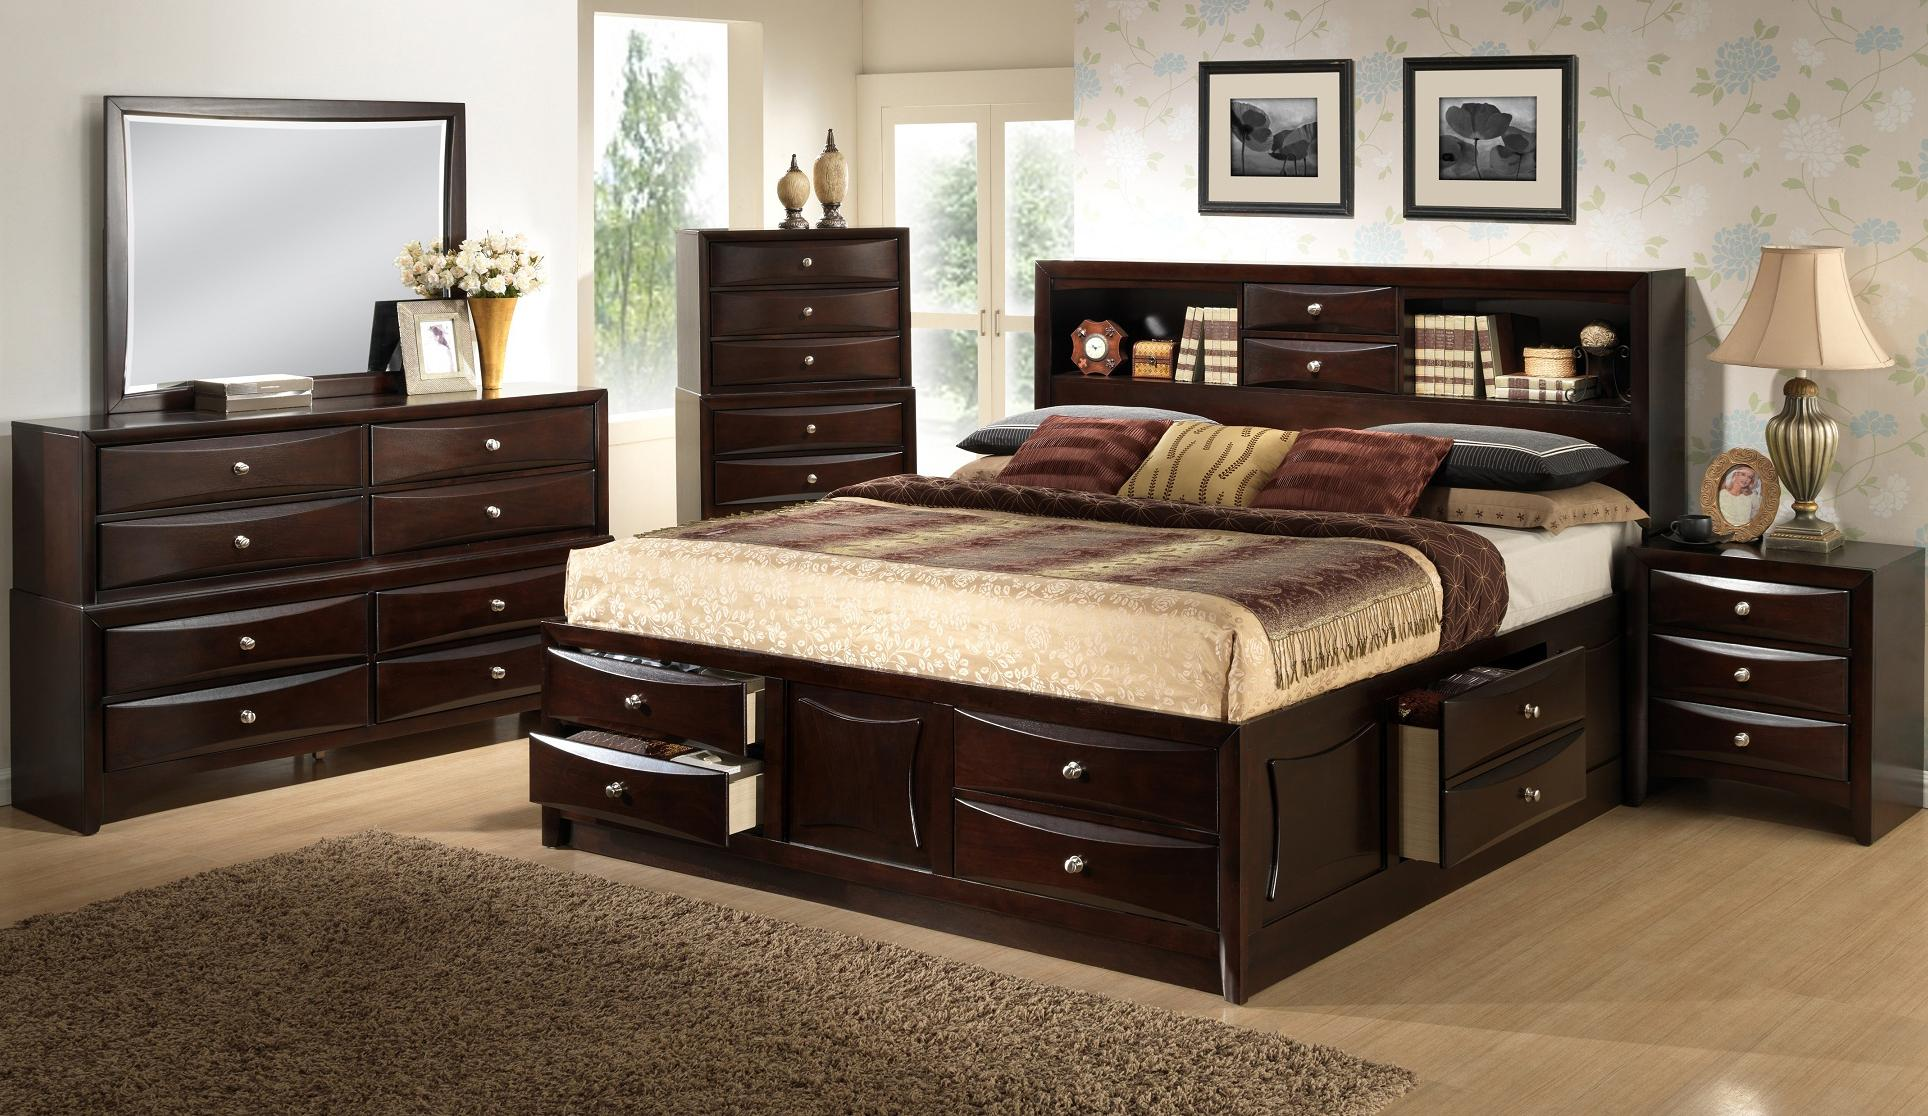 Lifestyle C King California King Storage Bed W